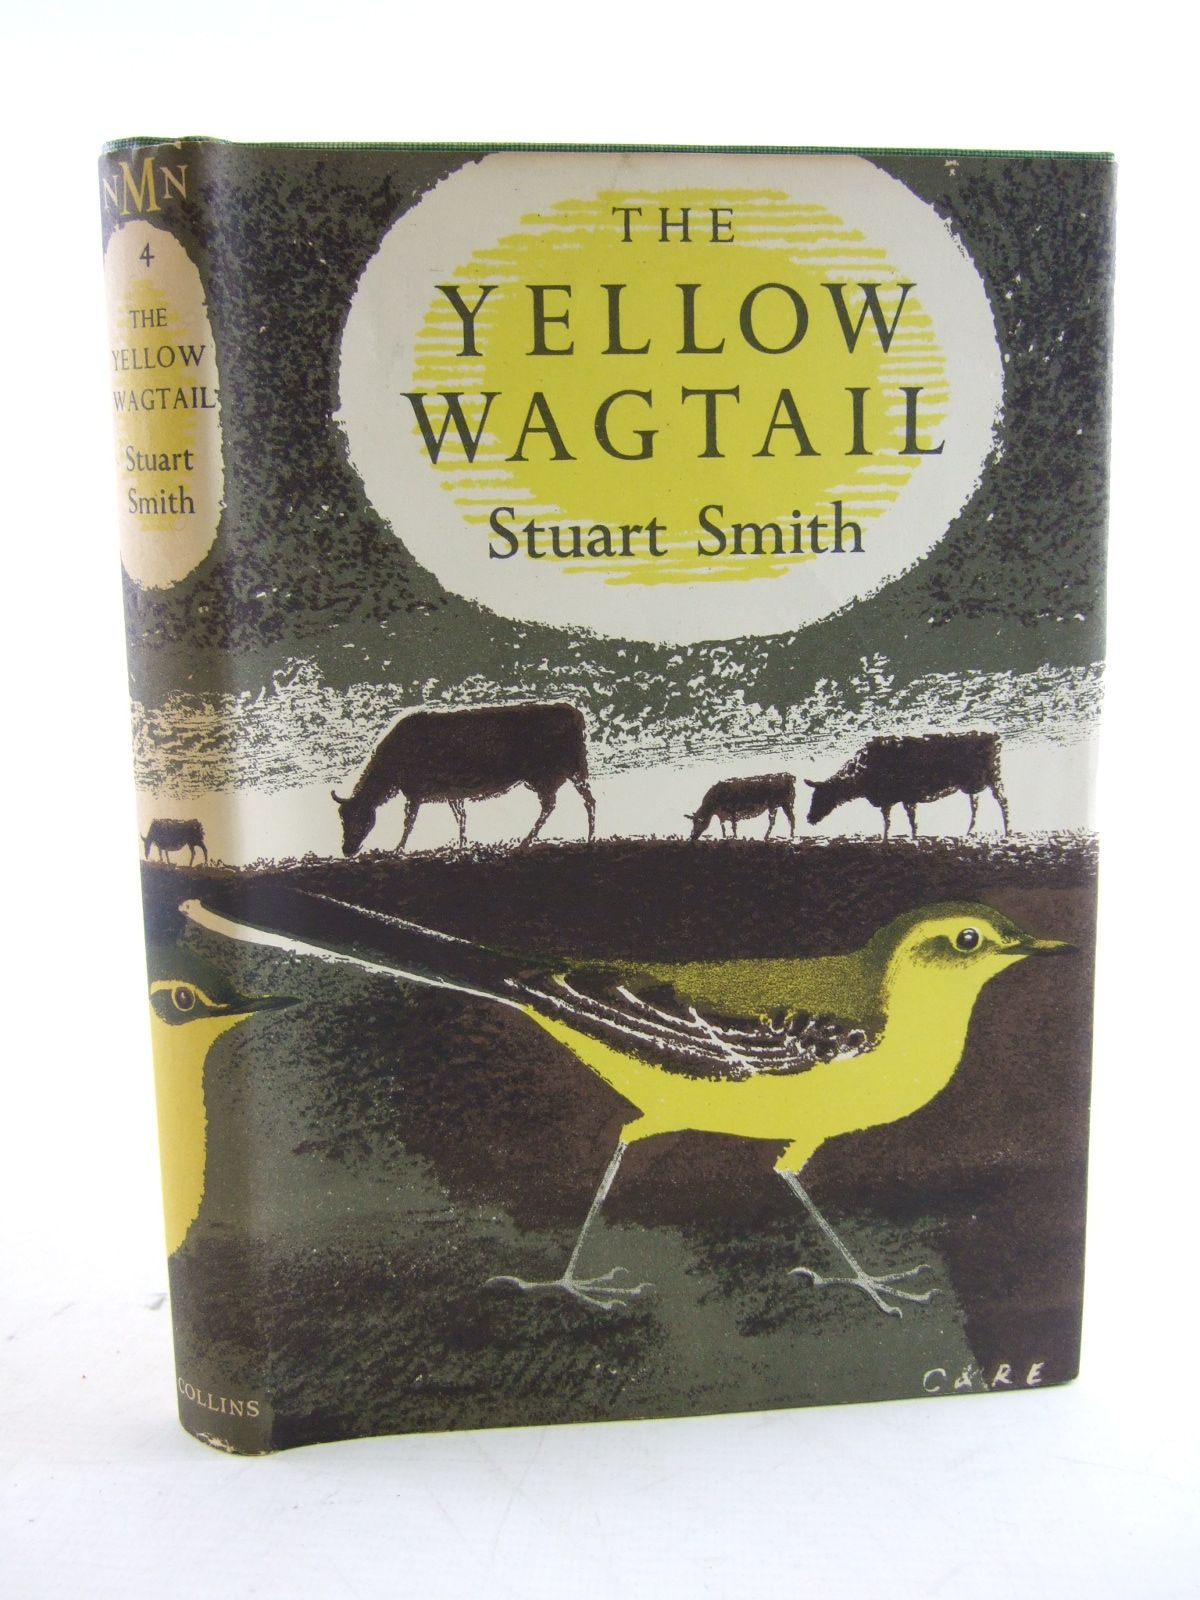 Photo of THE YELLOW WAGTAIL (NMN 4) written by Smith, Stuart illustrated by Bradbury, Edward published by Collins (STOCK CODE: 1806836)  for sale by Stella & Rose's Books